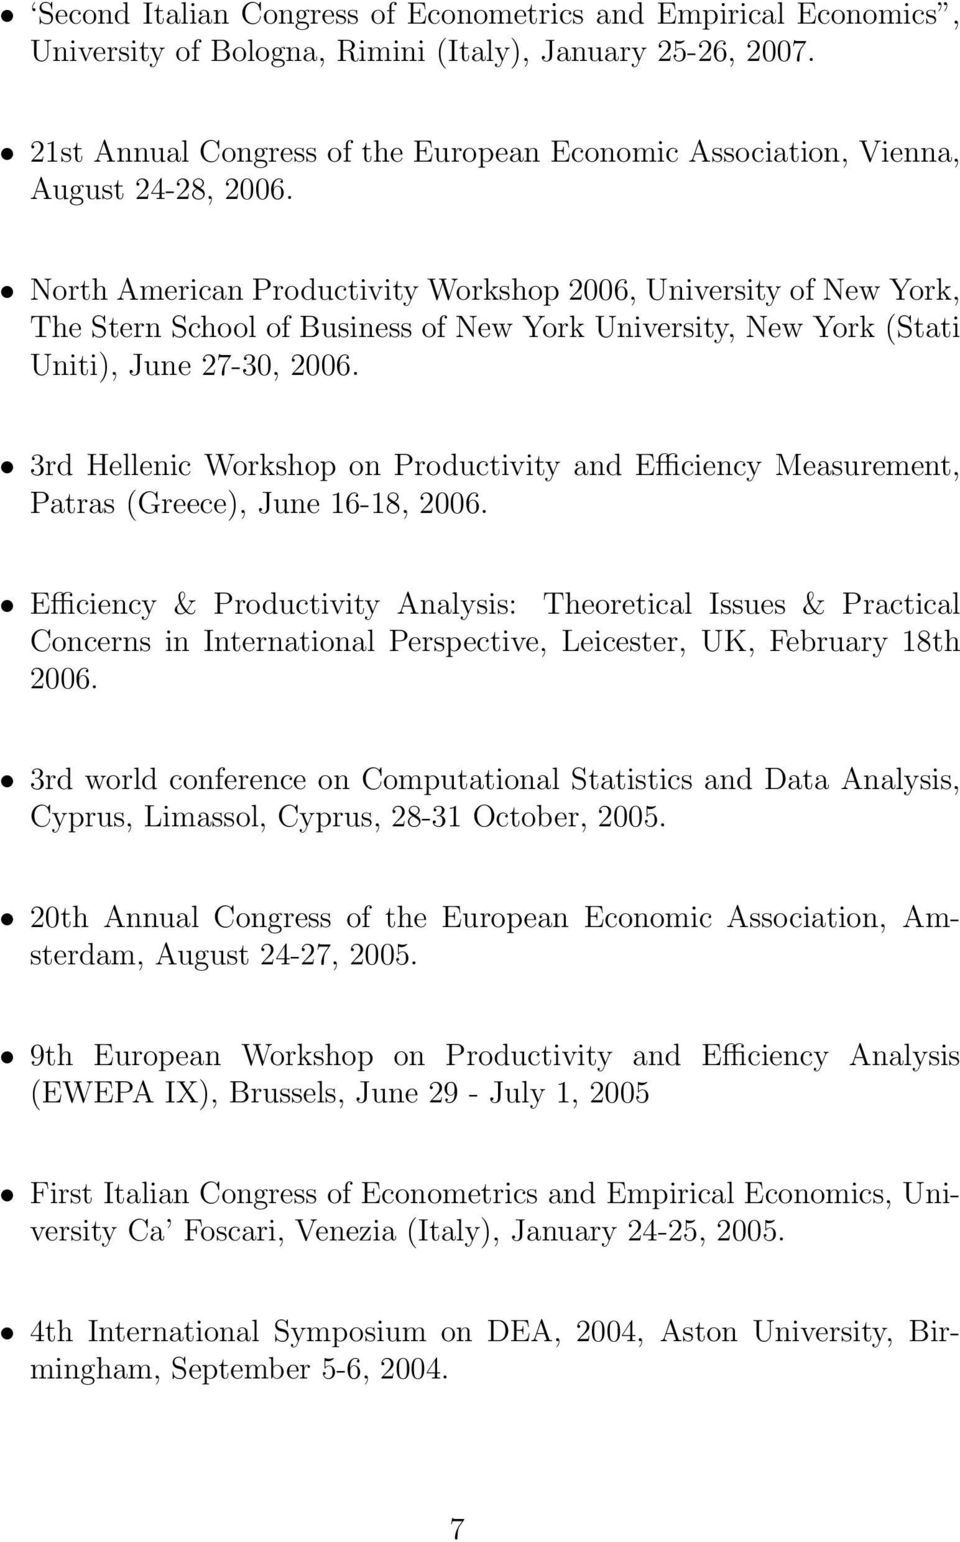 North American Productivity Workshop 2006, University of New York, The Stern School of Business of New York University, New York (Stati Uniti), June 27-30, 2006.